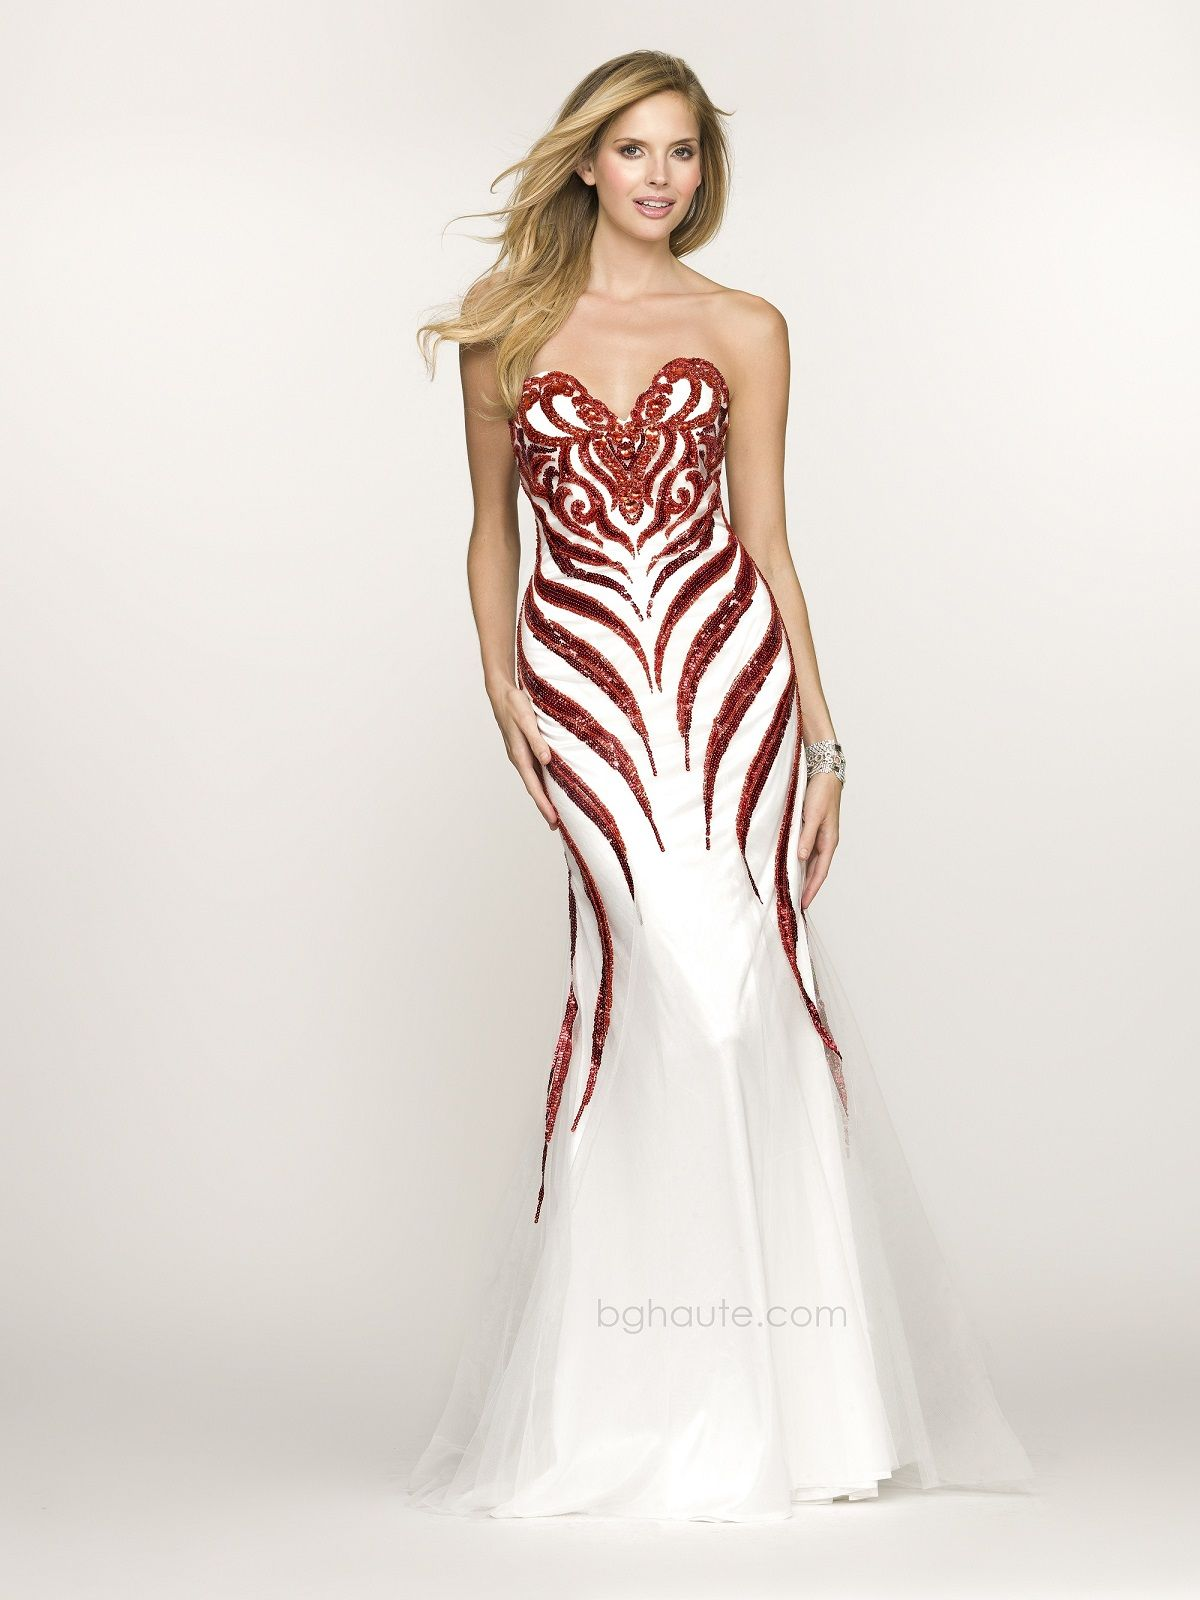 35885741f8a Where To Shop For Prom Dresses In Nj - Data Dynamic AG